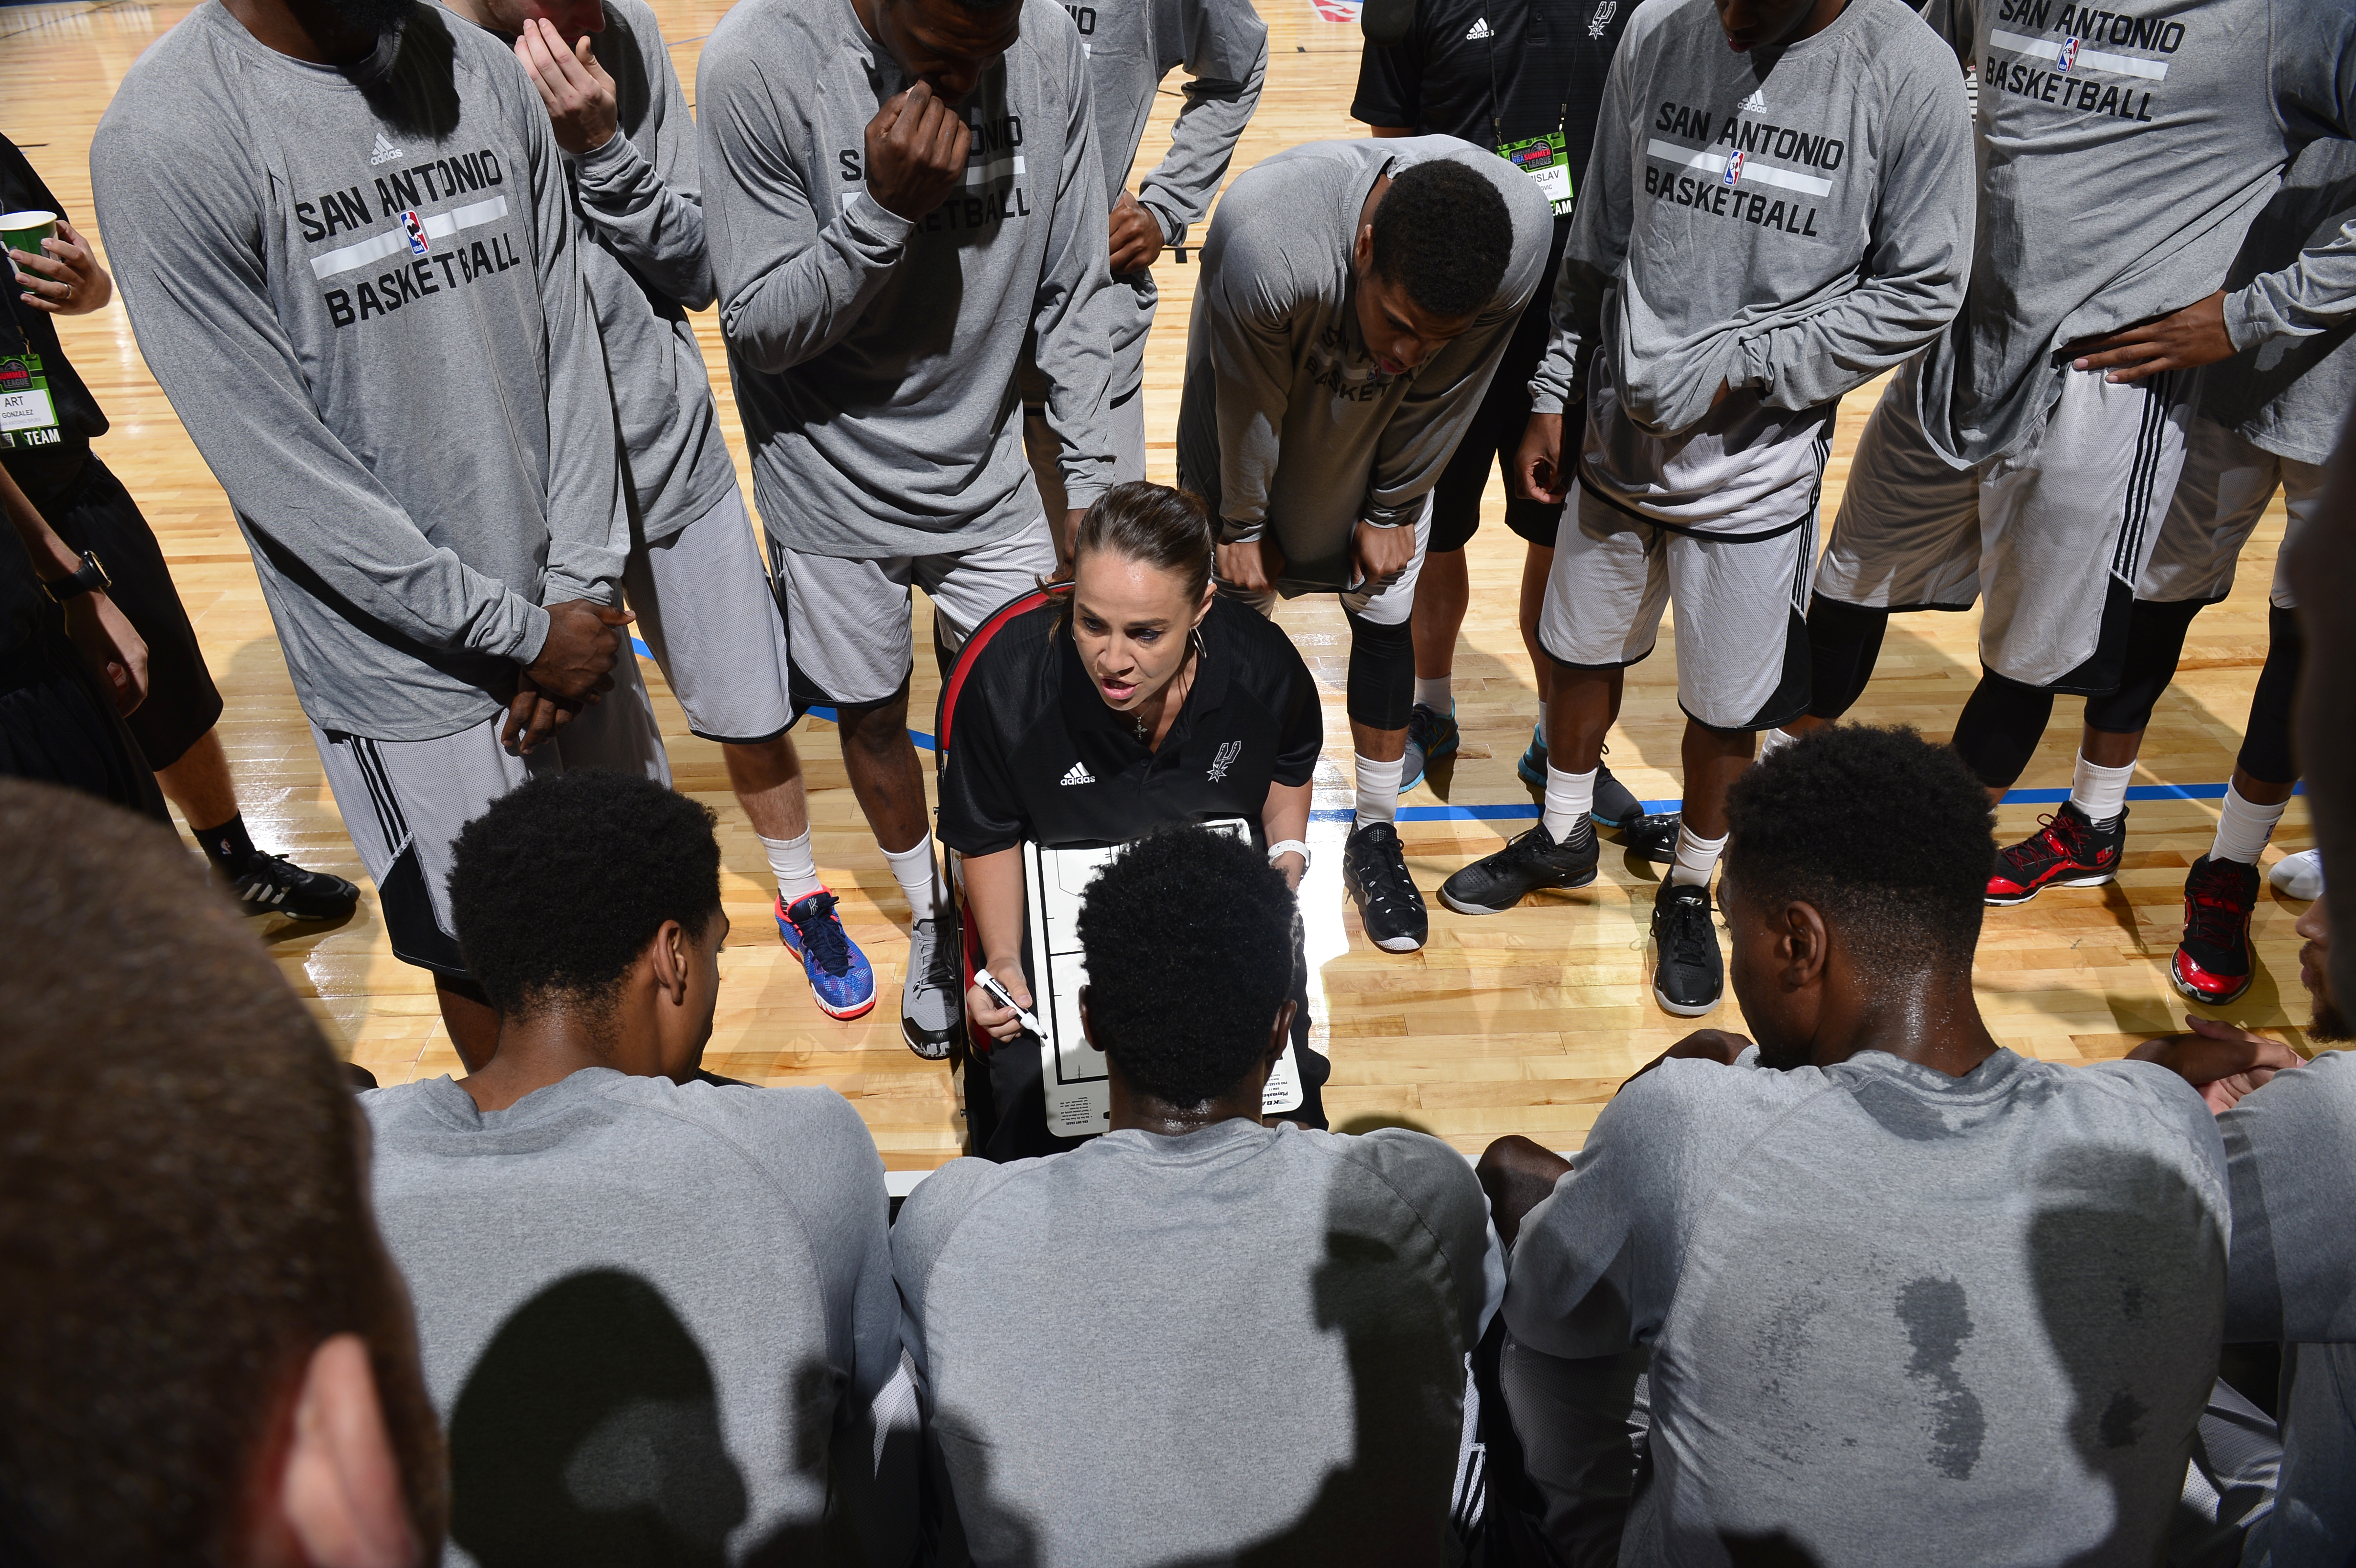 LAS VEGAS, NV - JULY 11: San Antonio Spurs head coach, Becky Hammon directs a play against the New York Knicks during the game on July 11, 2015 at Thomas And Mack Center, Las Vegas, Nevada.  (Photo by David Dow/NBAE via Getty Images)